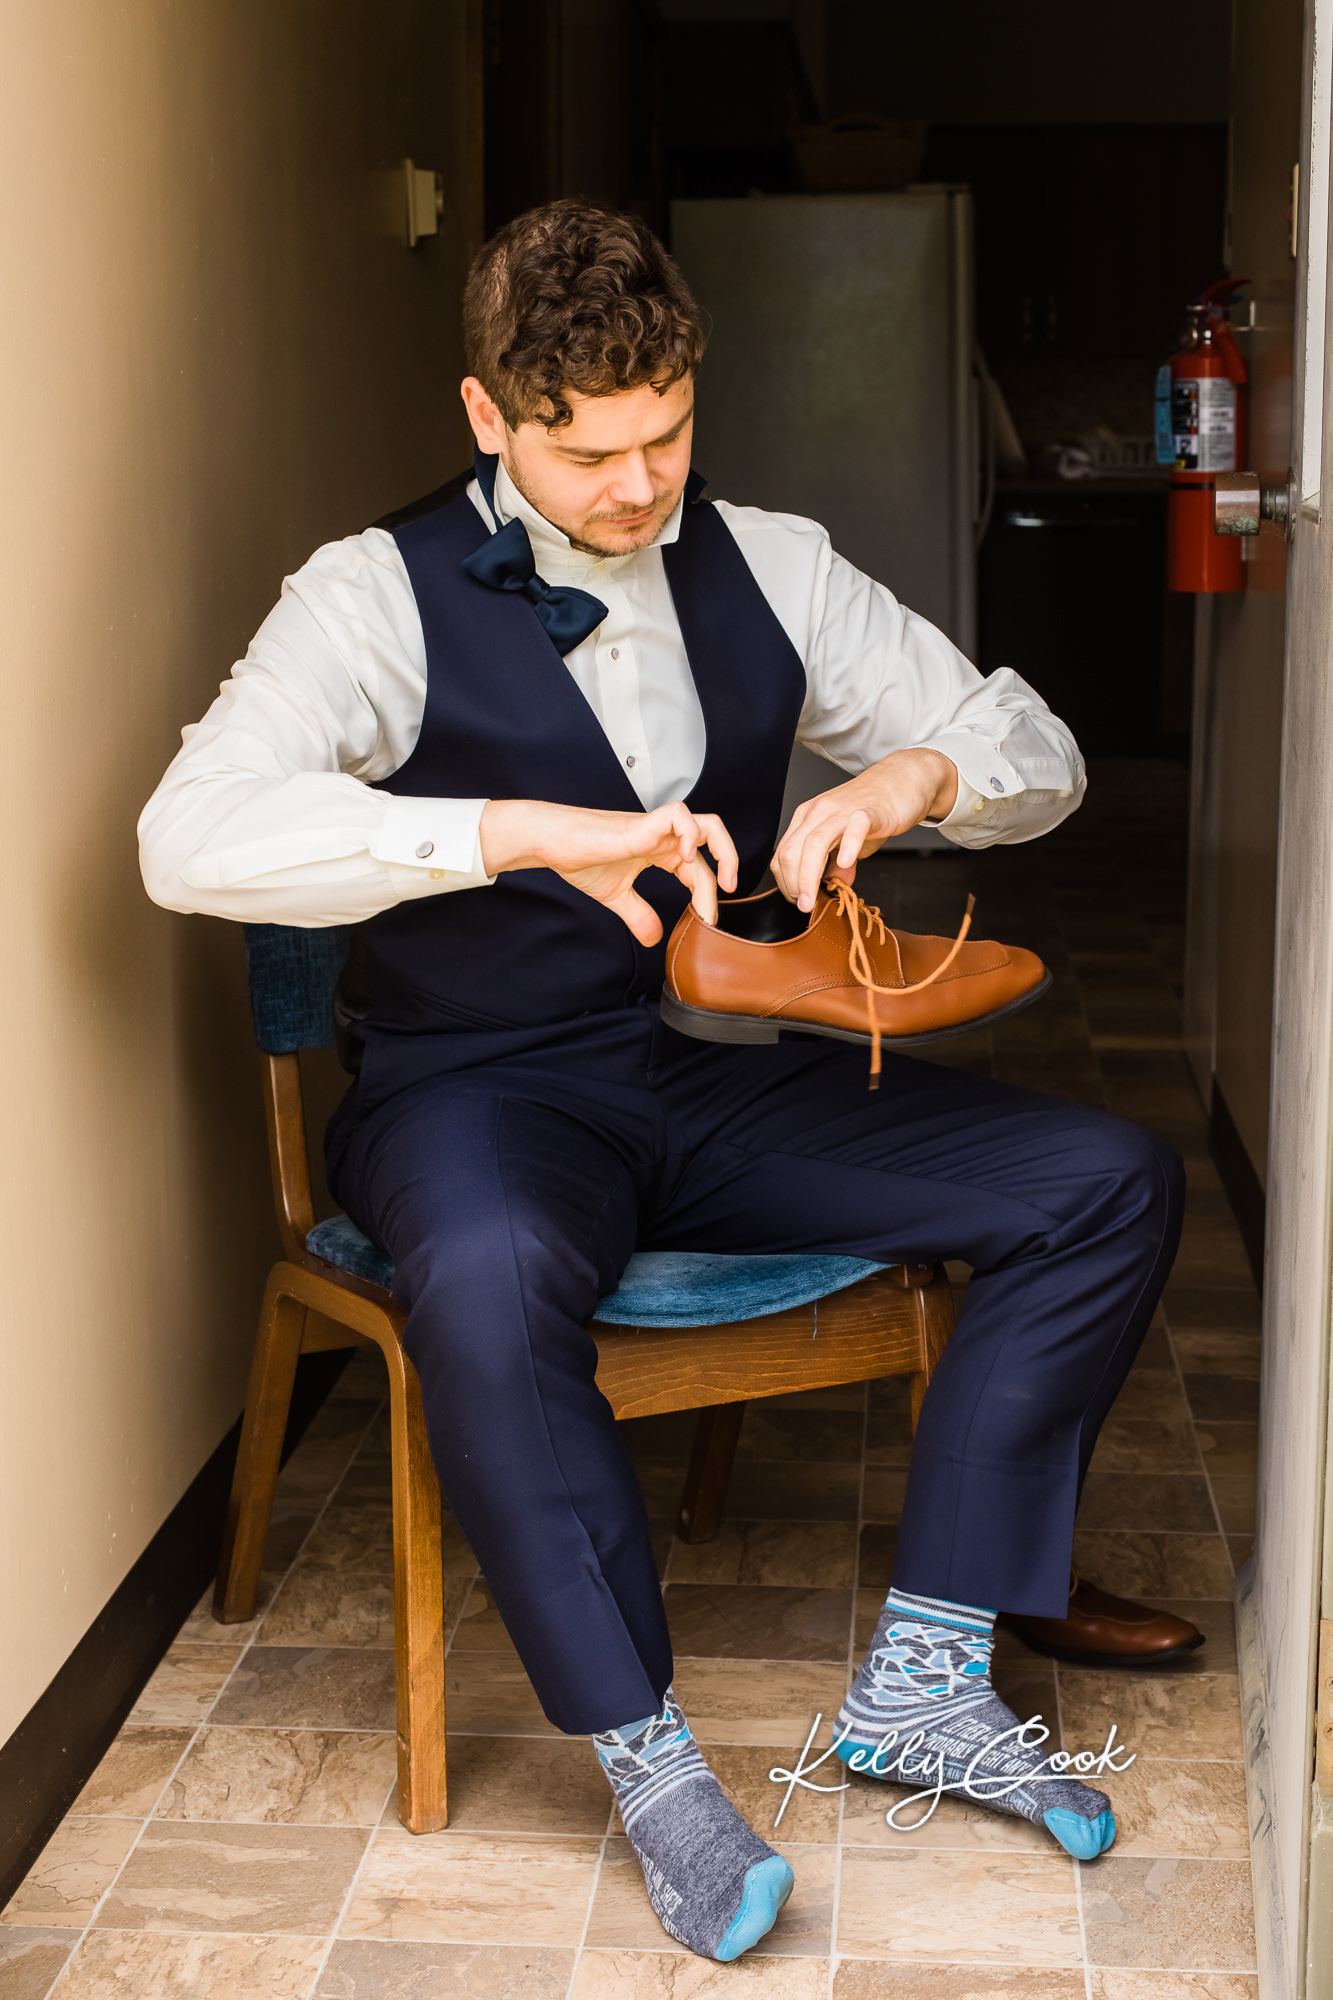 Wedding photo of the groom putting on his shoes